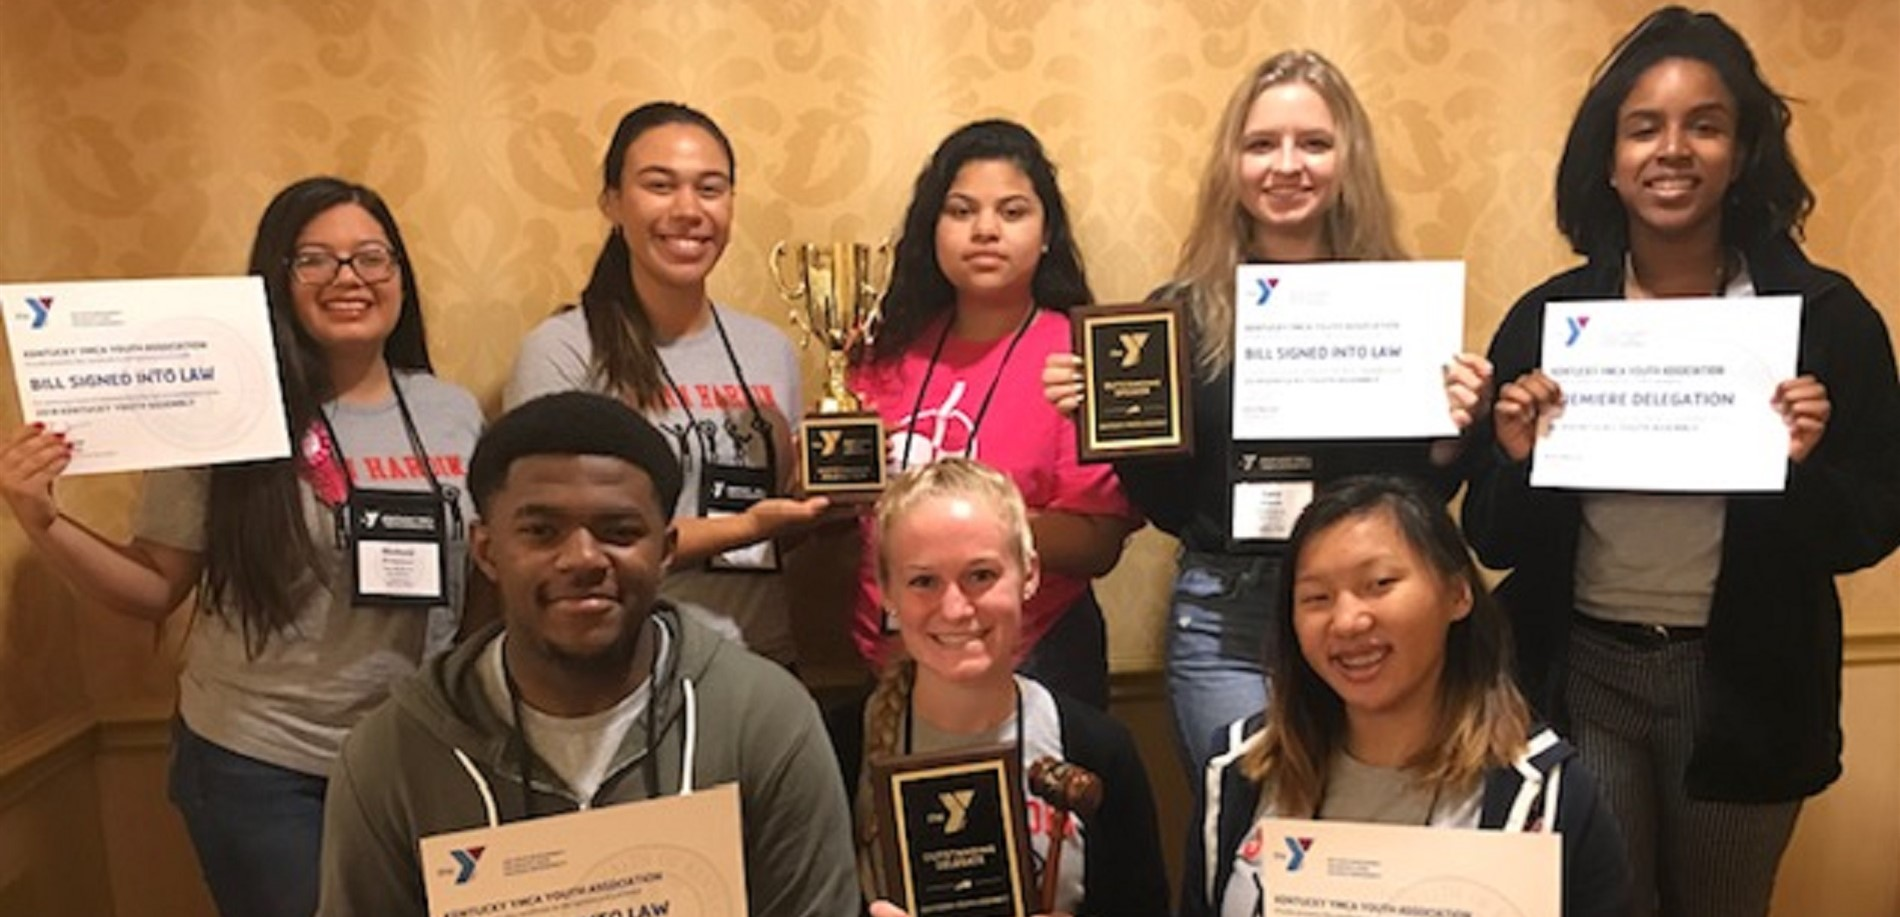 JHHS students win BEST DELEGATION at state KYA conference